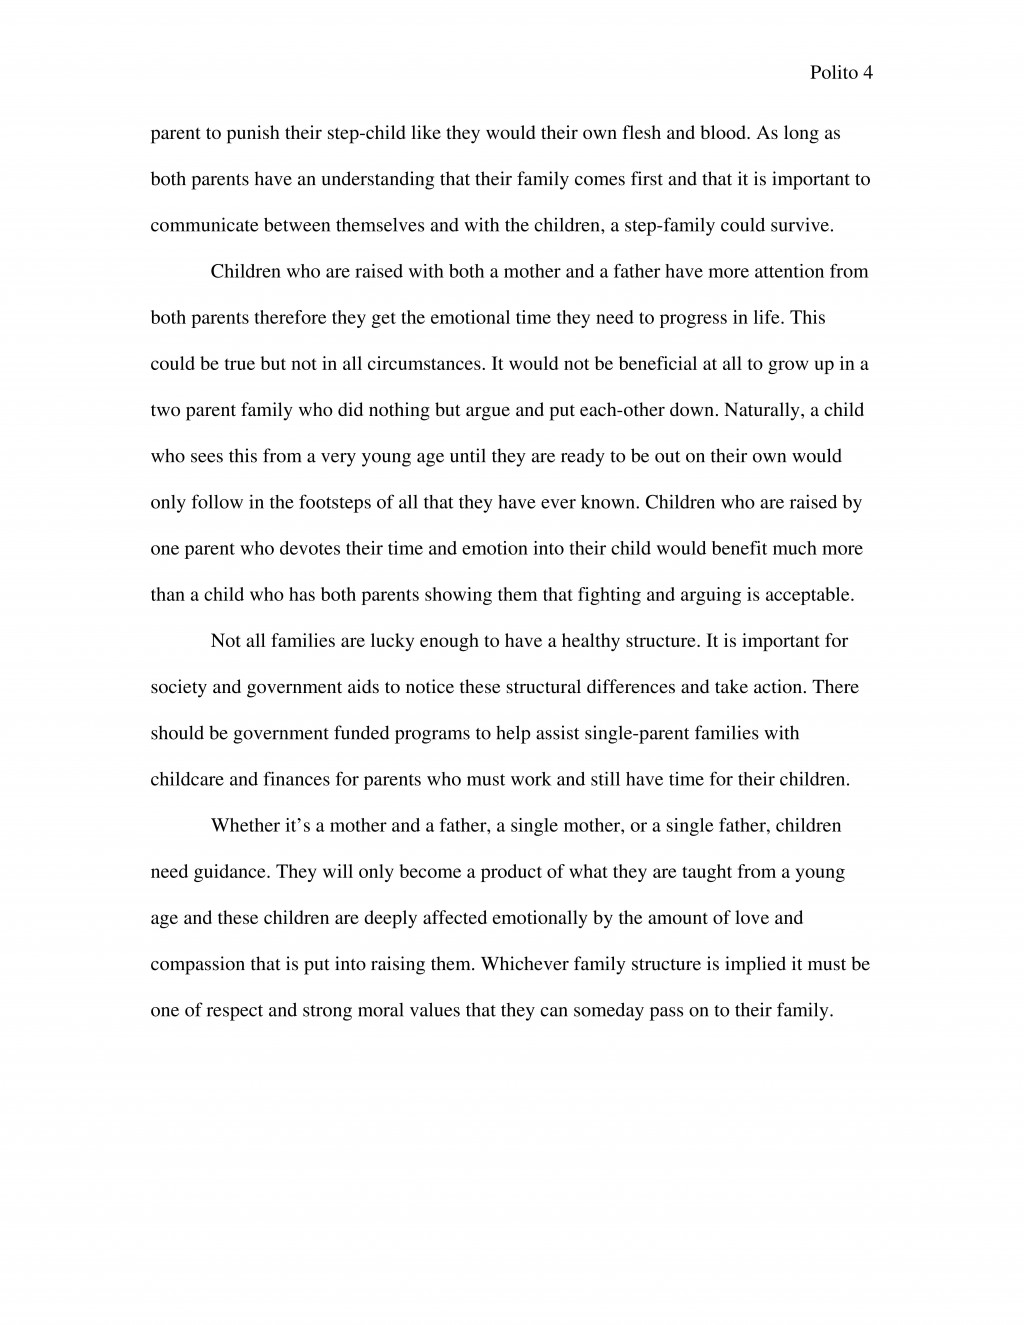 012 Essay Example Expository Sample 2 Impressive Samples Topics Grade 5 O Level Essays For High School Students Large